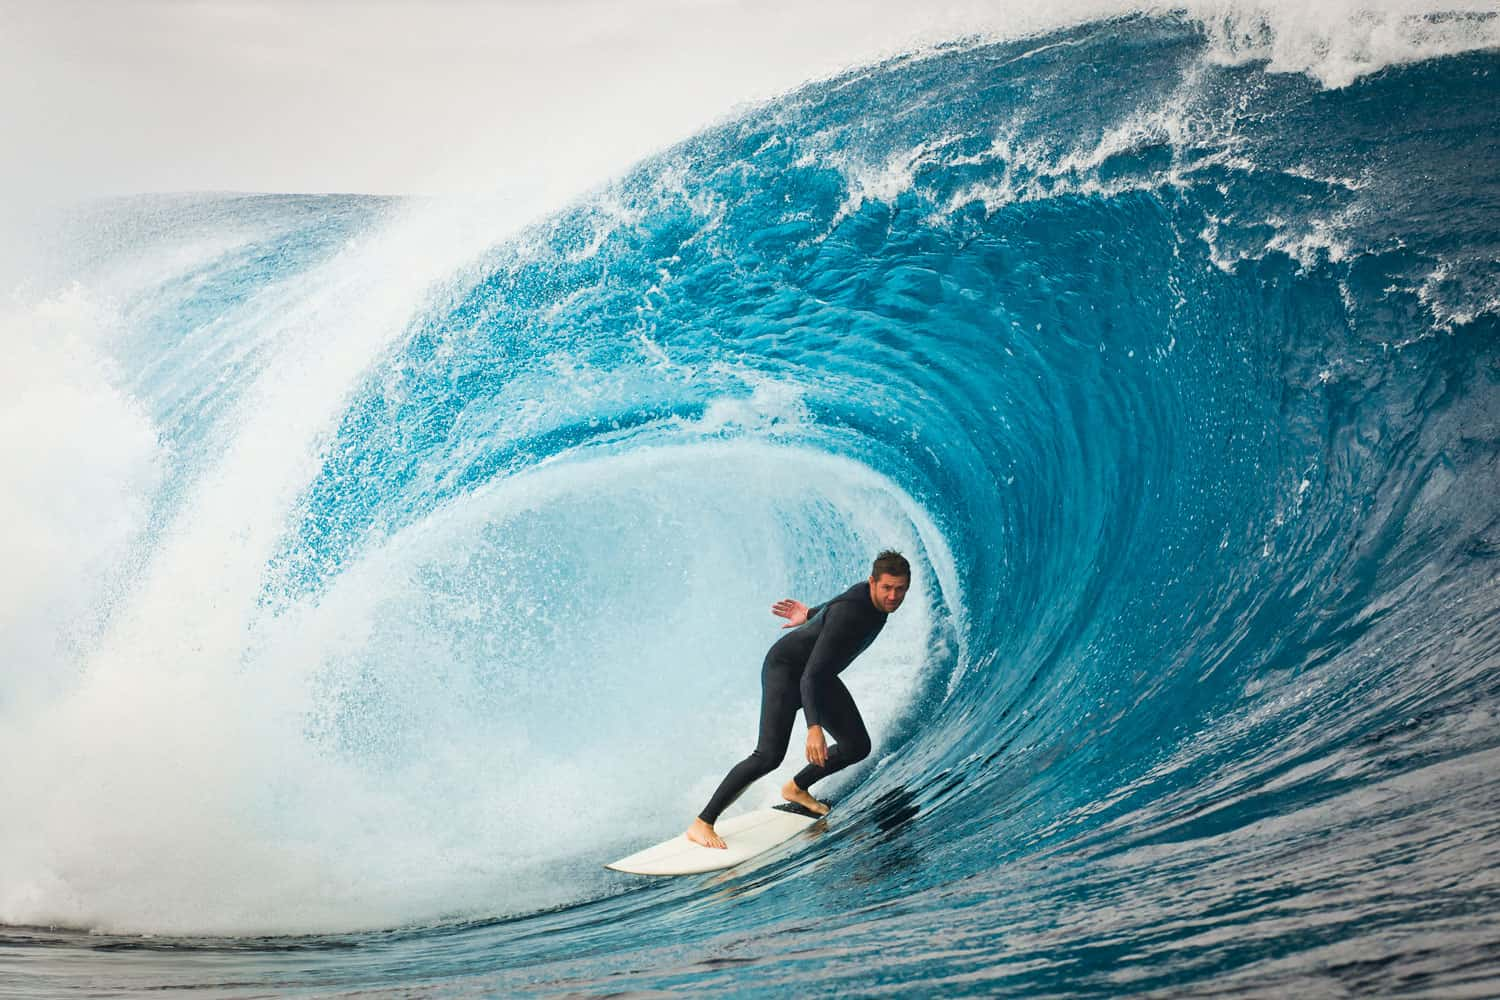 A man surfing a huge wave with his surfboard